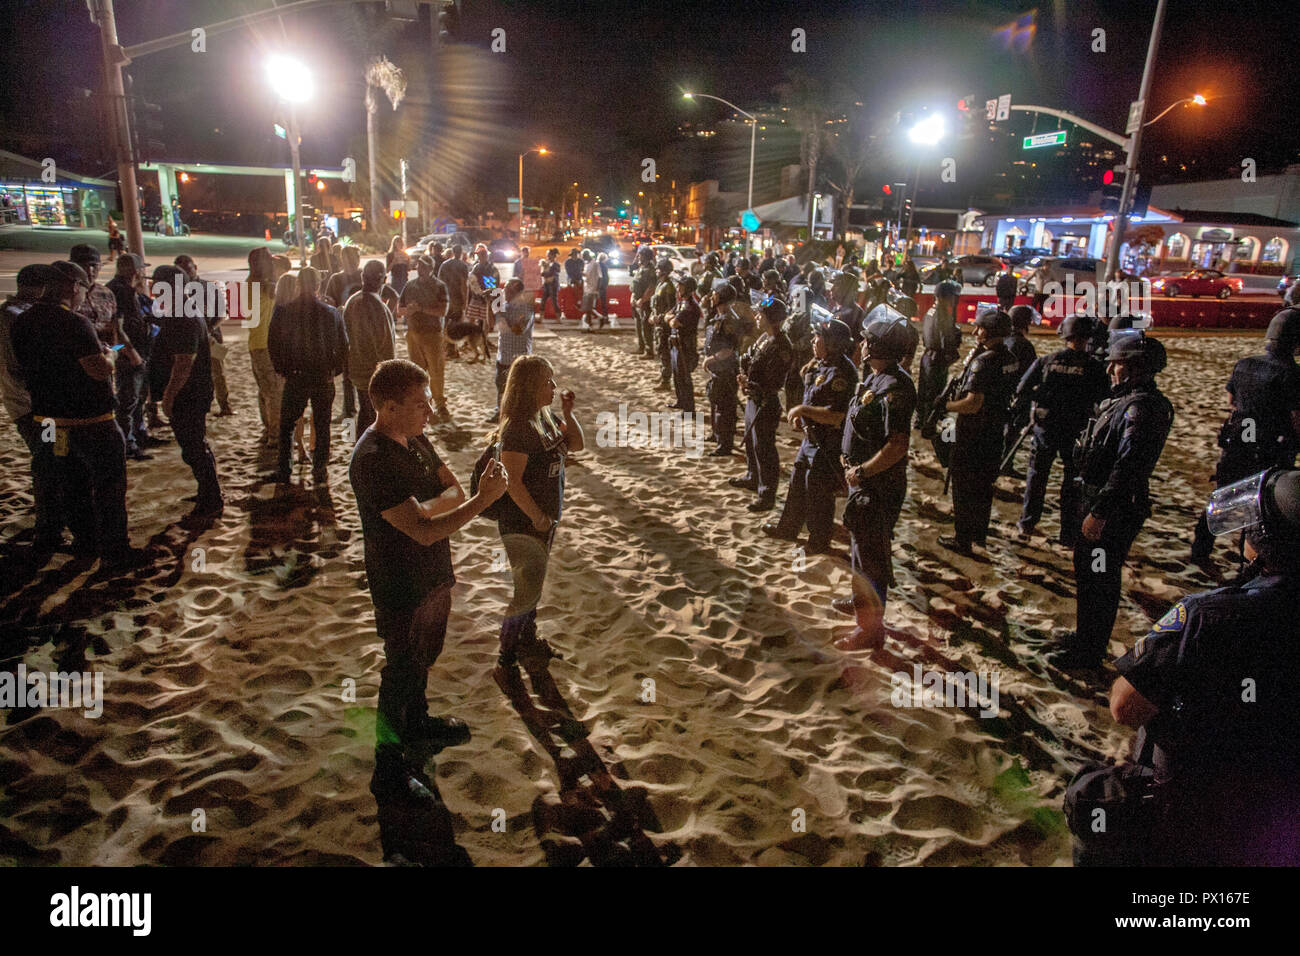 Laguna Beach, CA, police in hard hats line up to separate multiracial demonstrators from counter-demonstrators at a right-wing rally on the city's Main Beach. - Stock Image